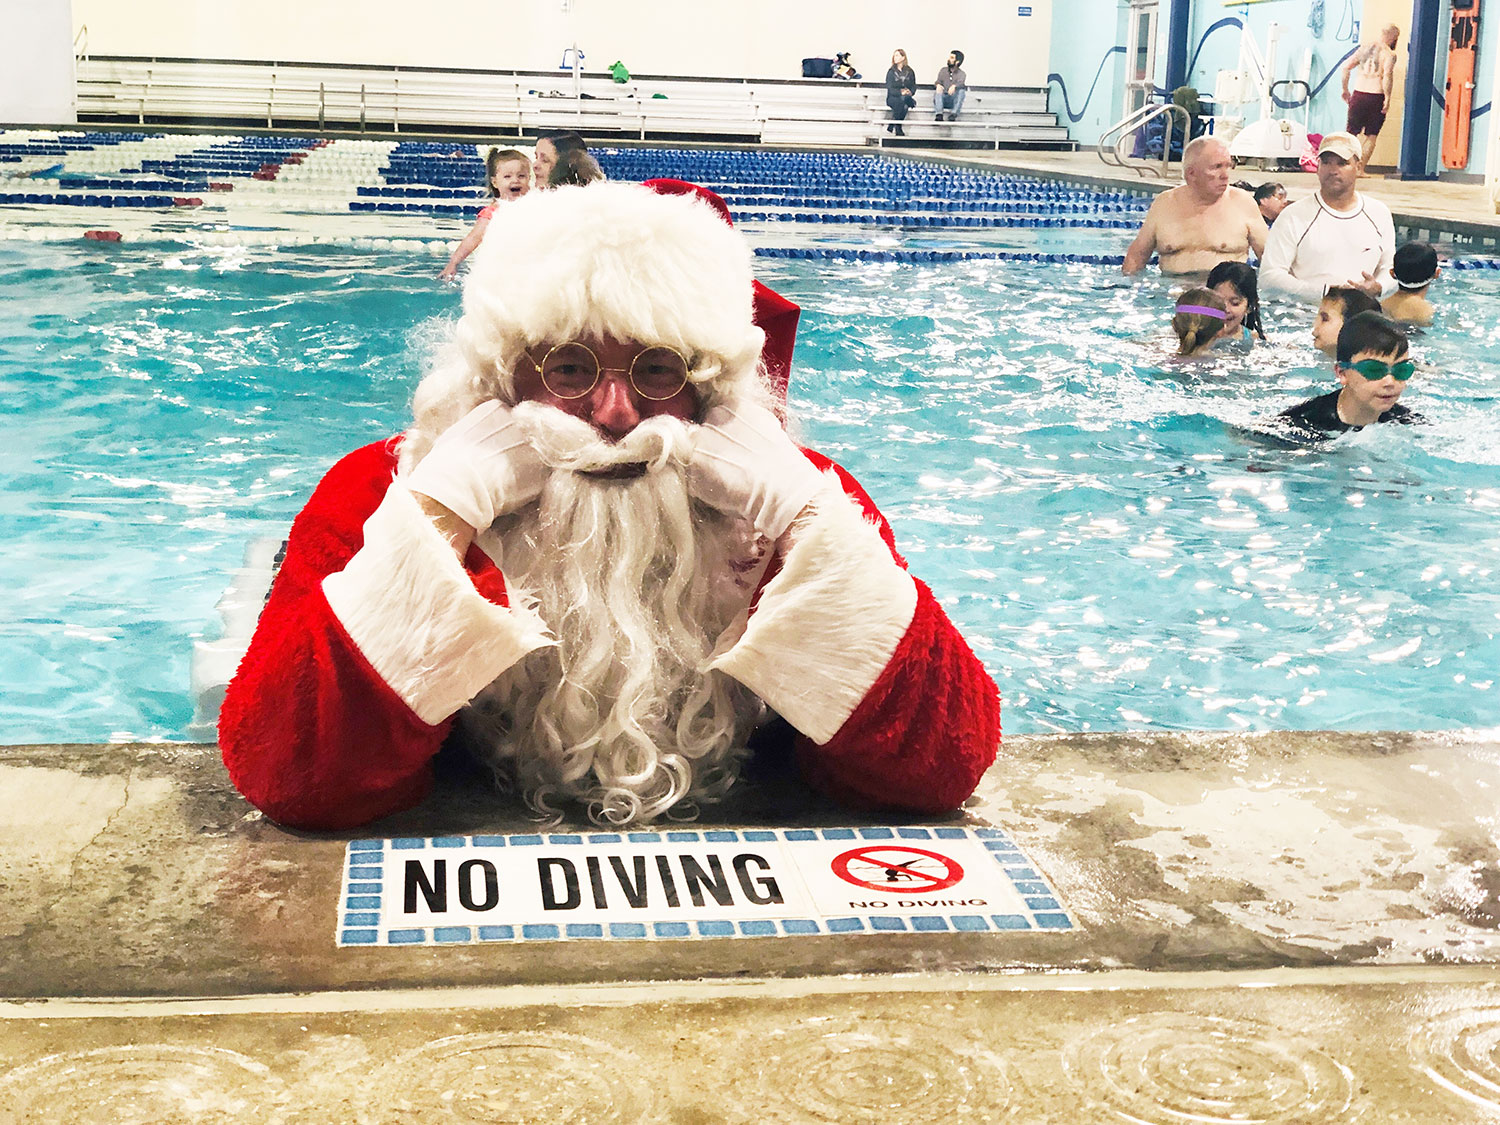 Santa poses on the edge of the pool